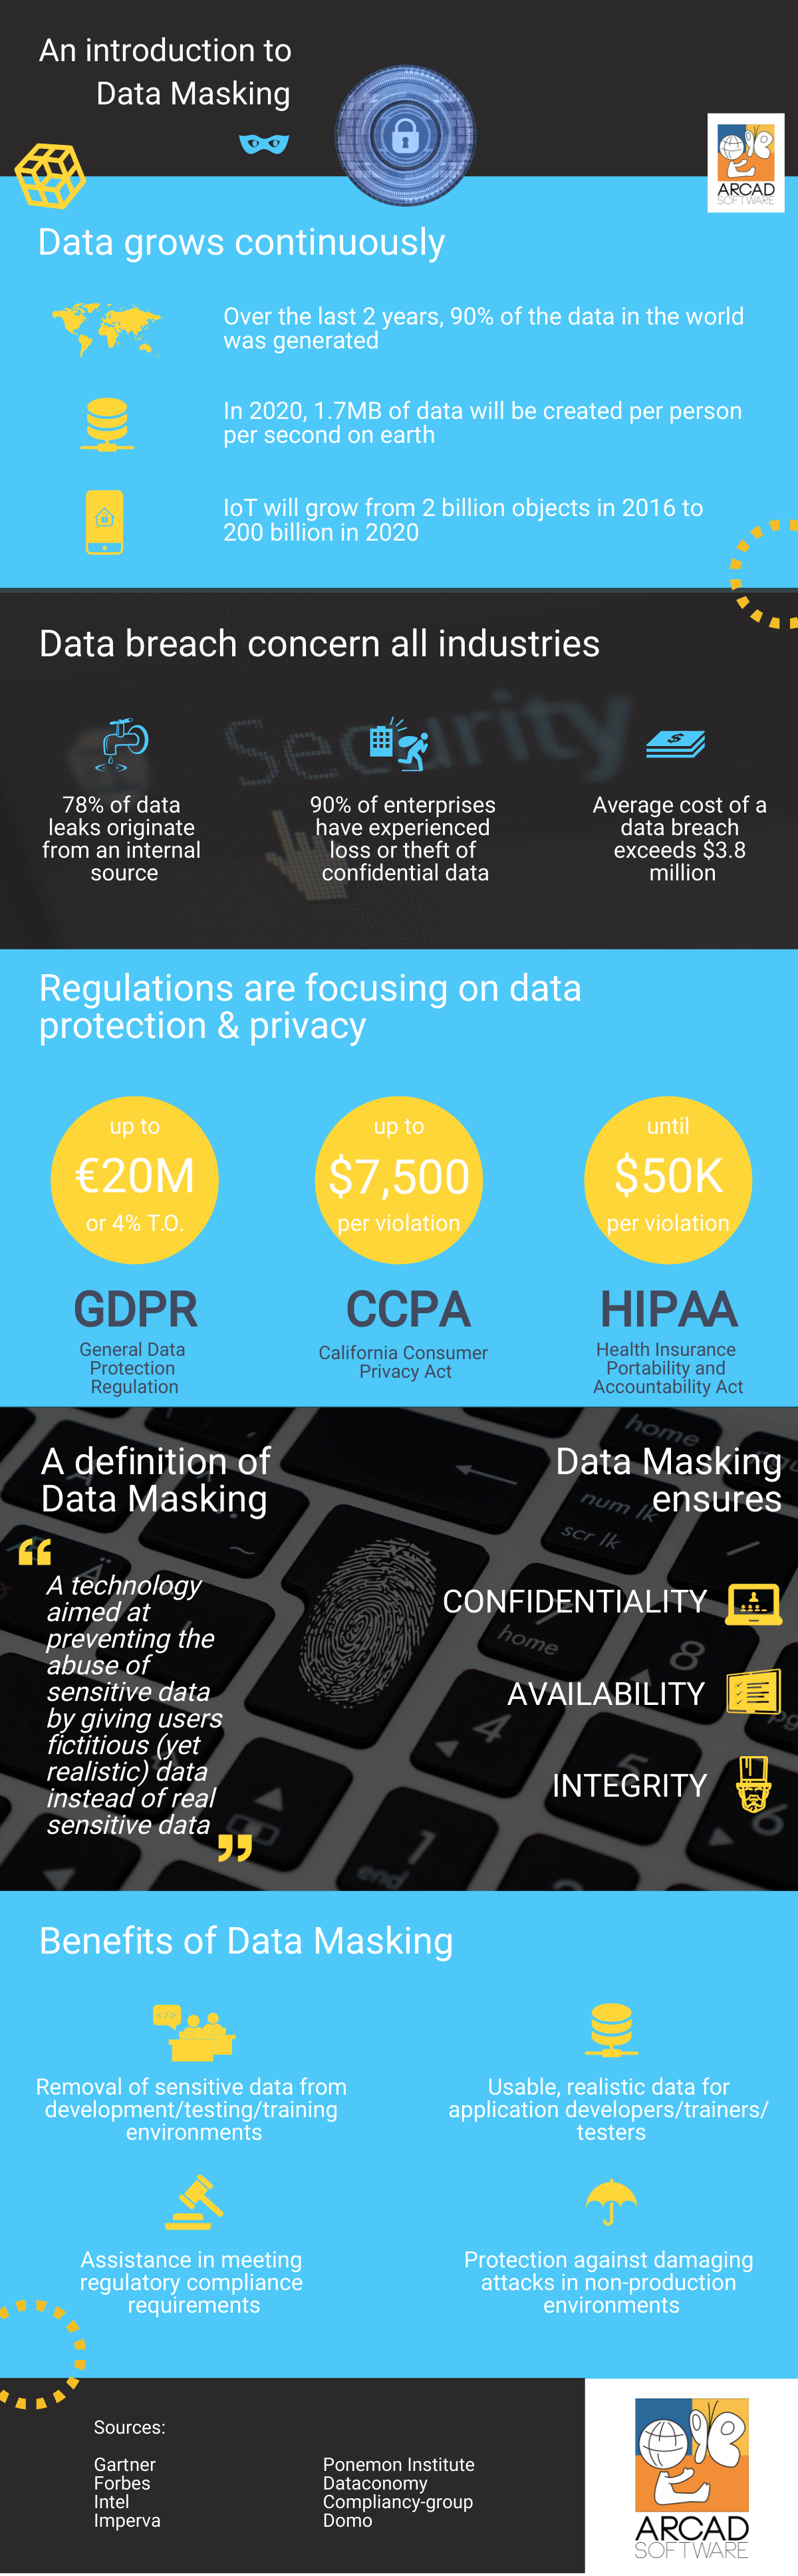 Infographic - An introduction to Data Masking